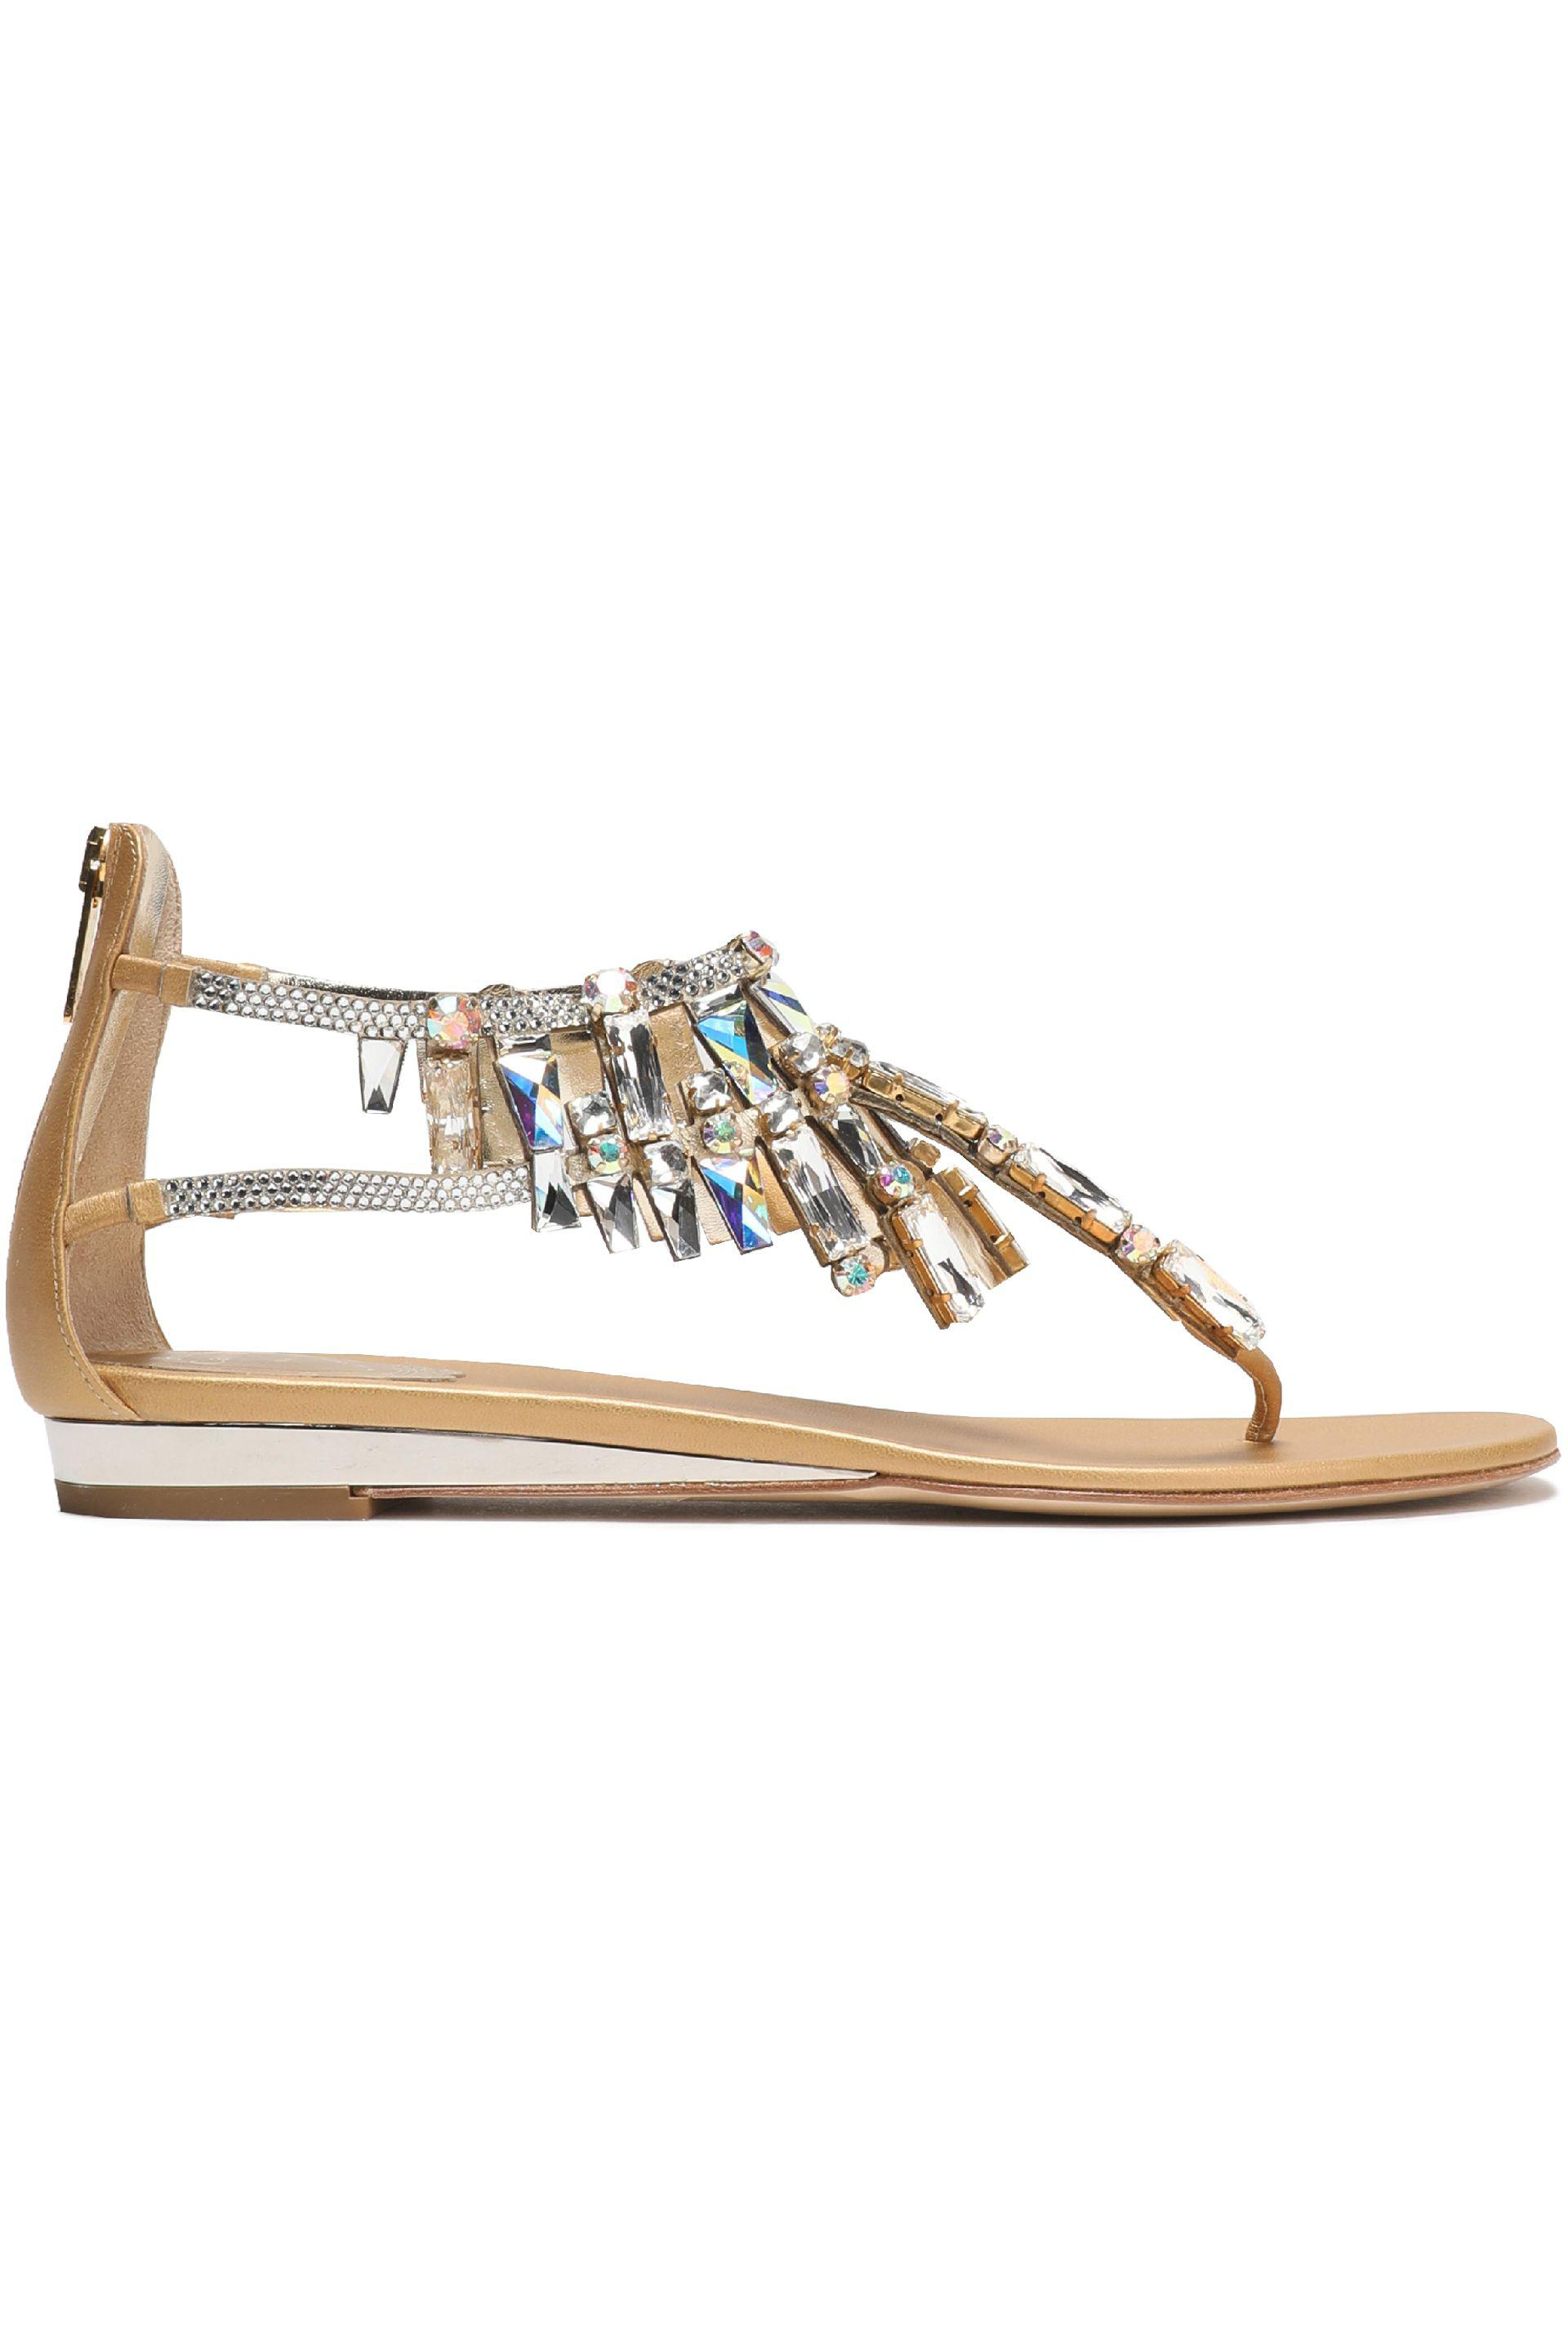 Crystal-embellished Metallic Leather Sandals - Silver Rene Caovilla